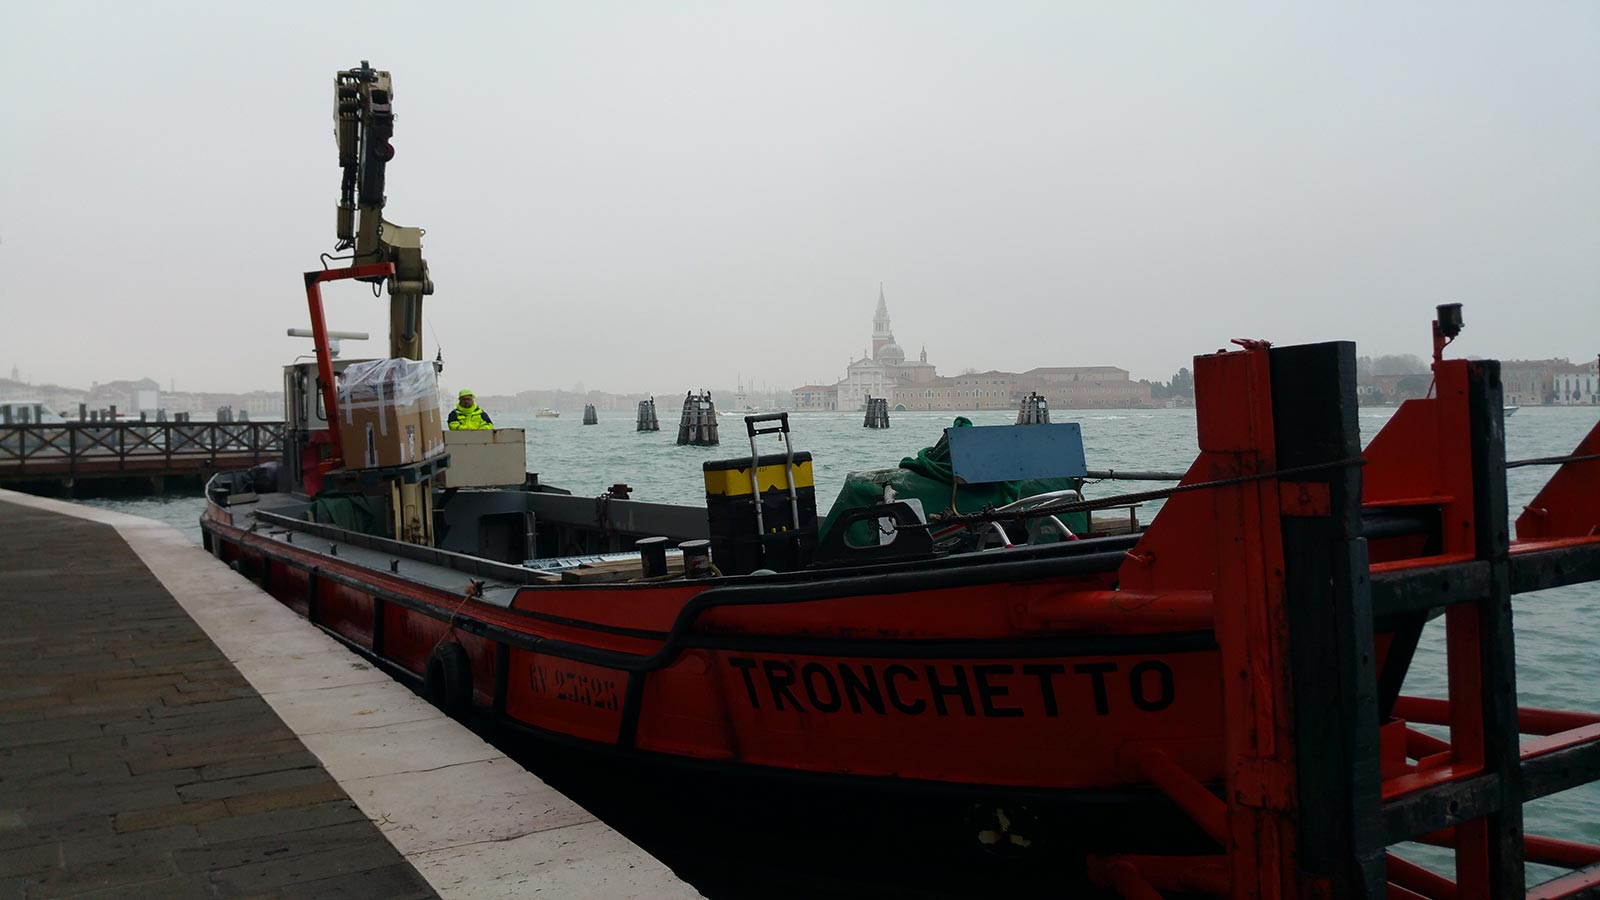 Transporting outfitting materials around Venice